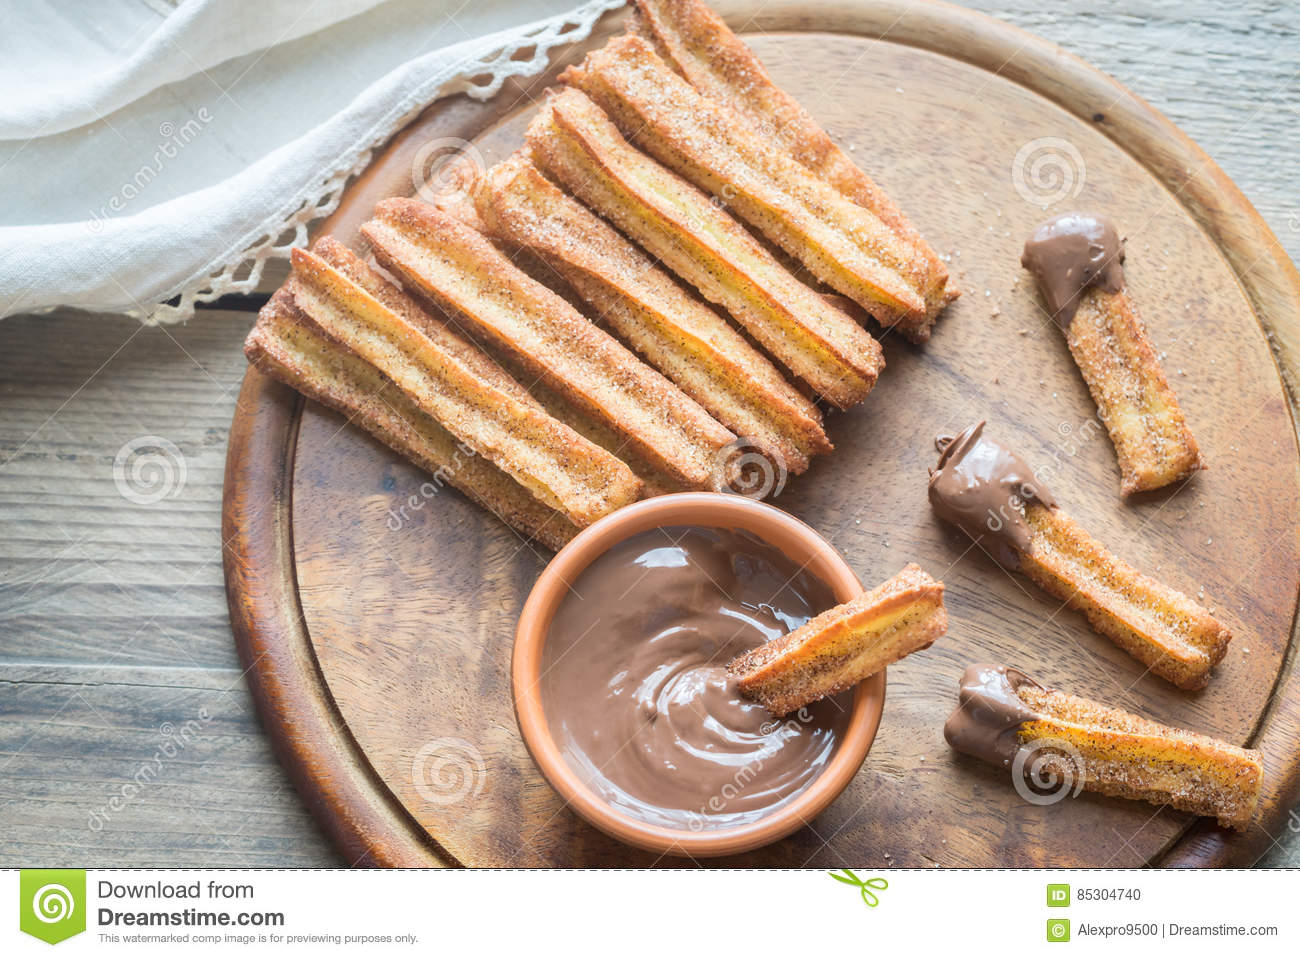 Churros - famous Spanish dessert with chocolate sauce